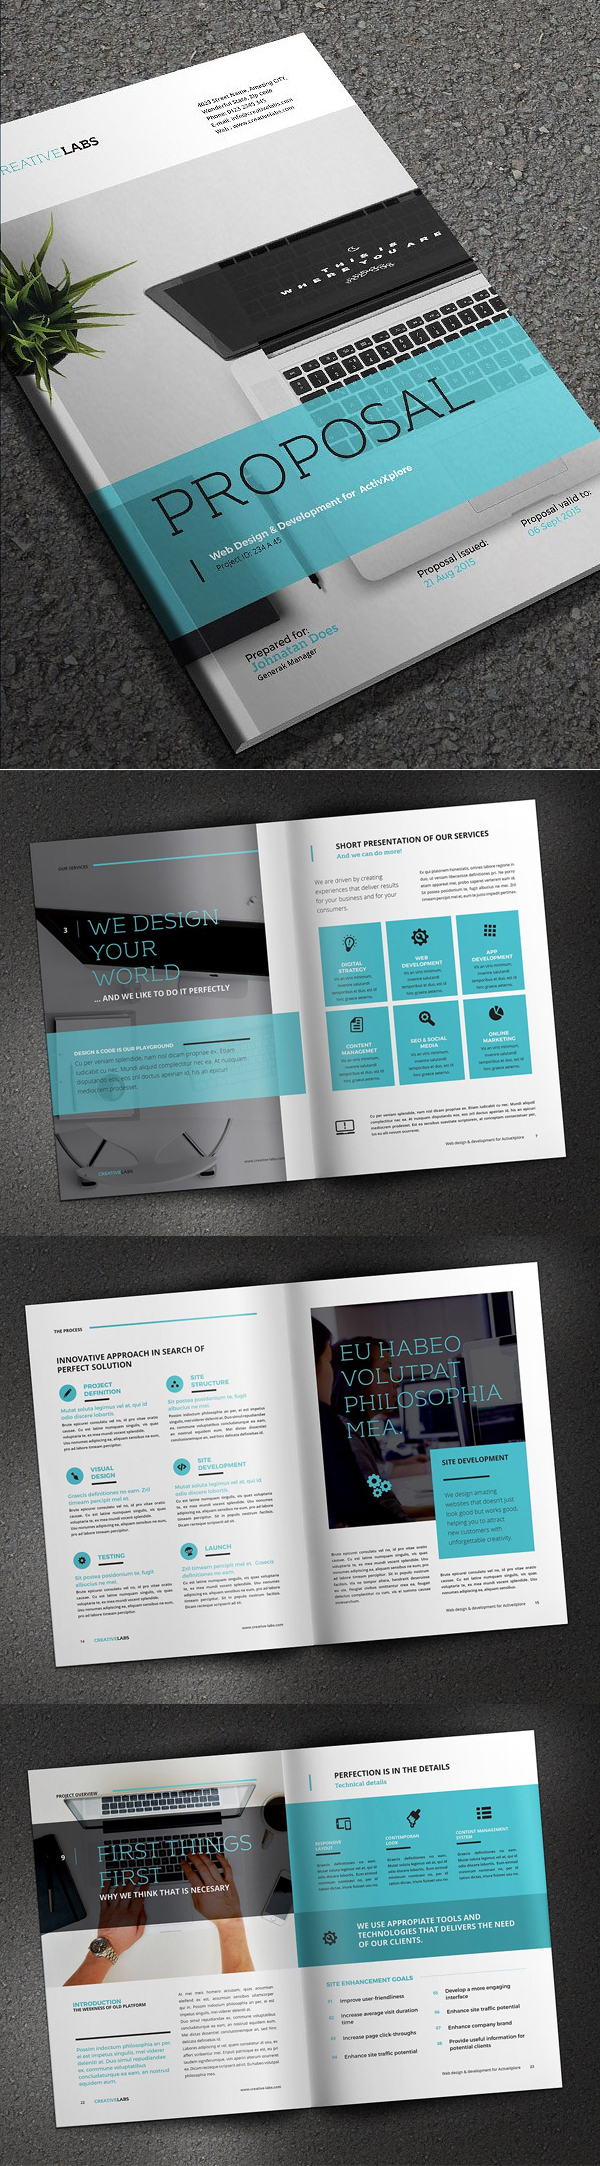 Professional Business Proposal Templates Design - 24